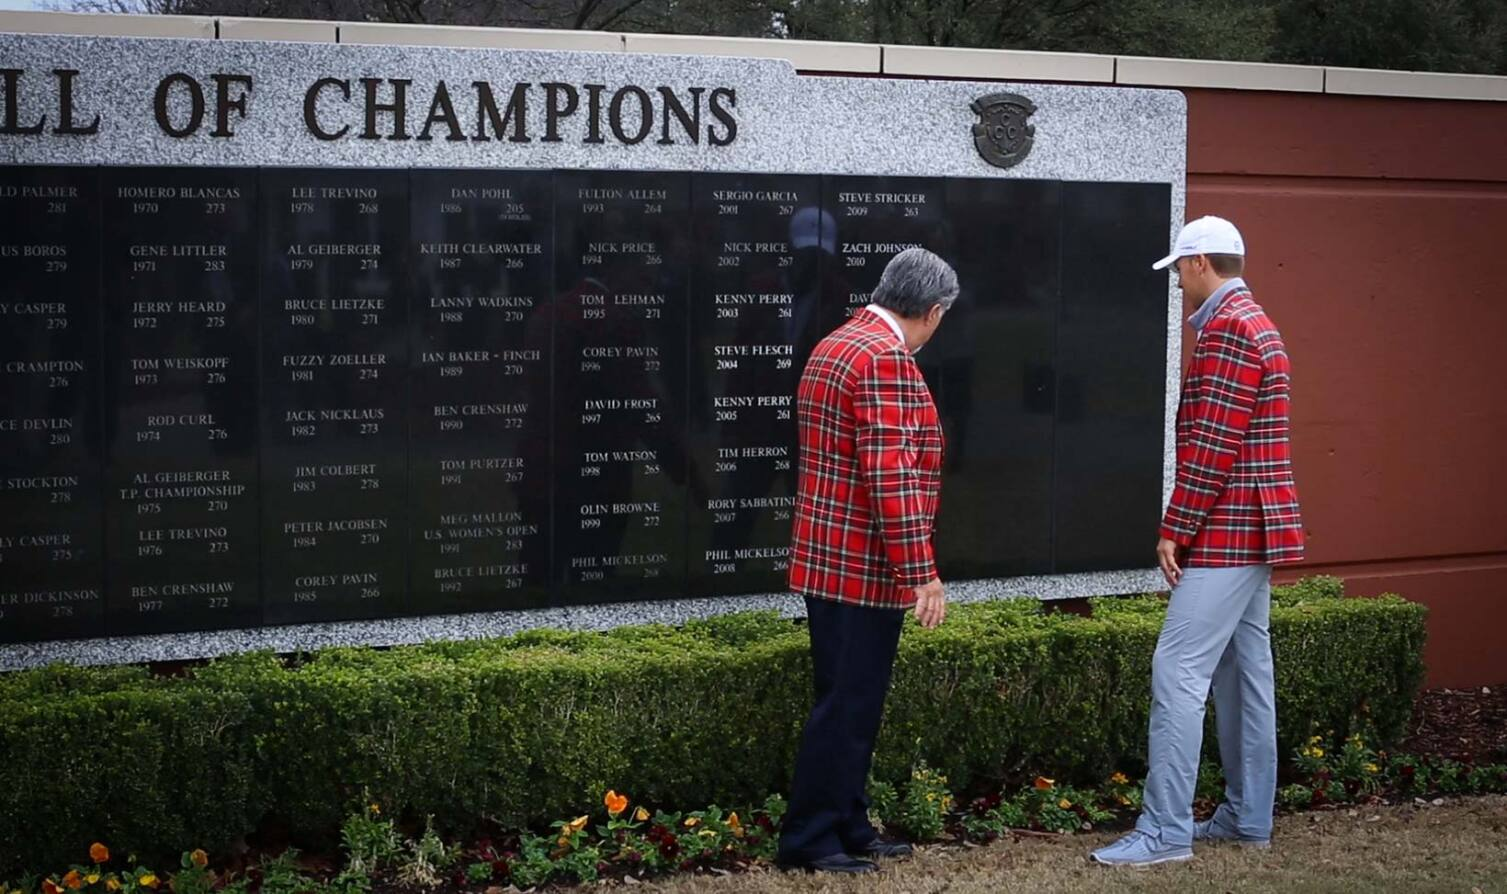 Jordan Gets His Name on the Wall of Champions at Colonial